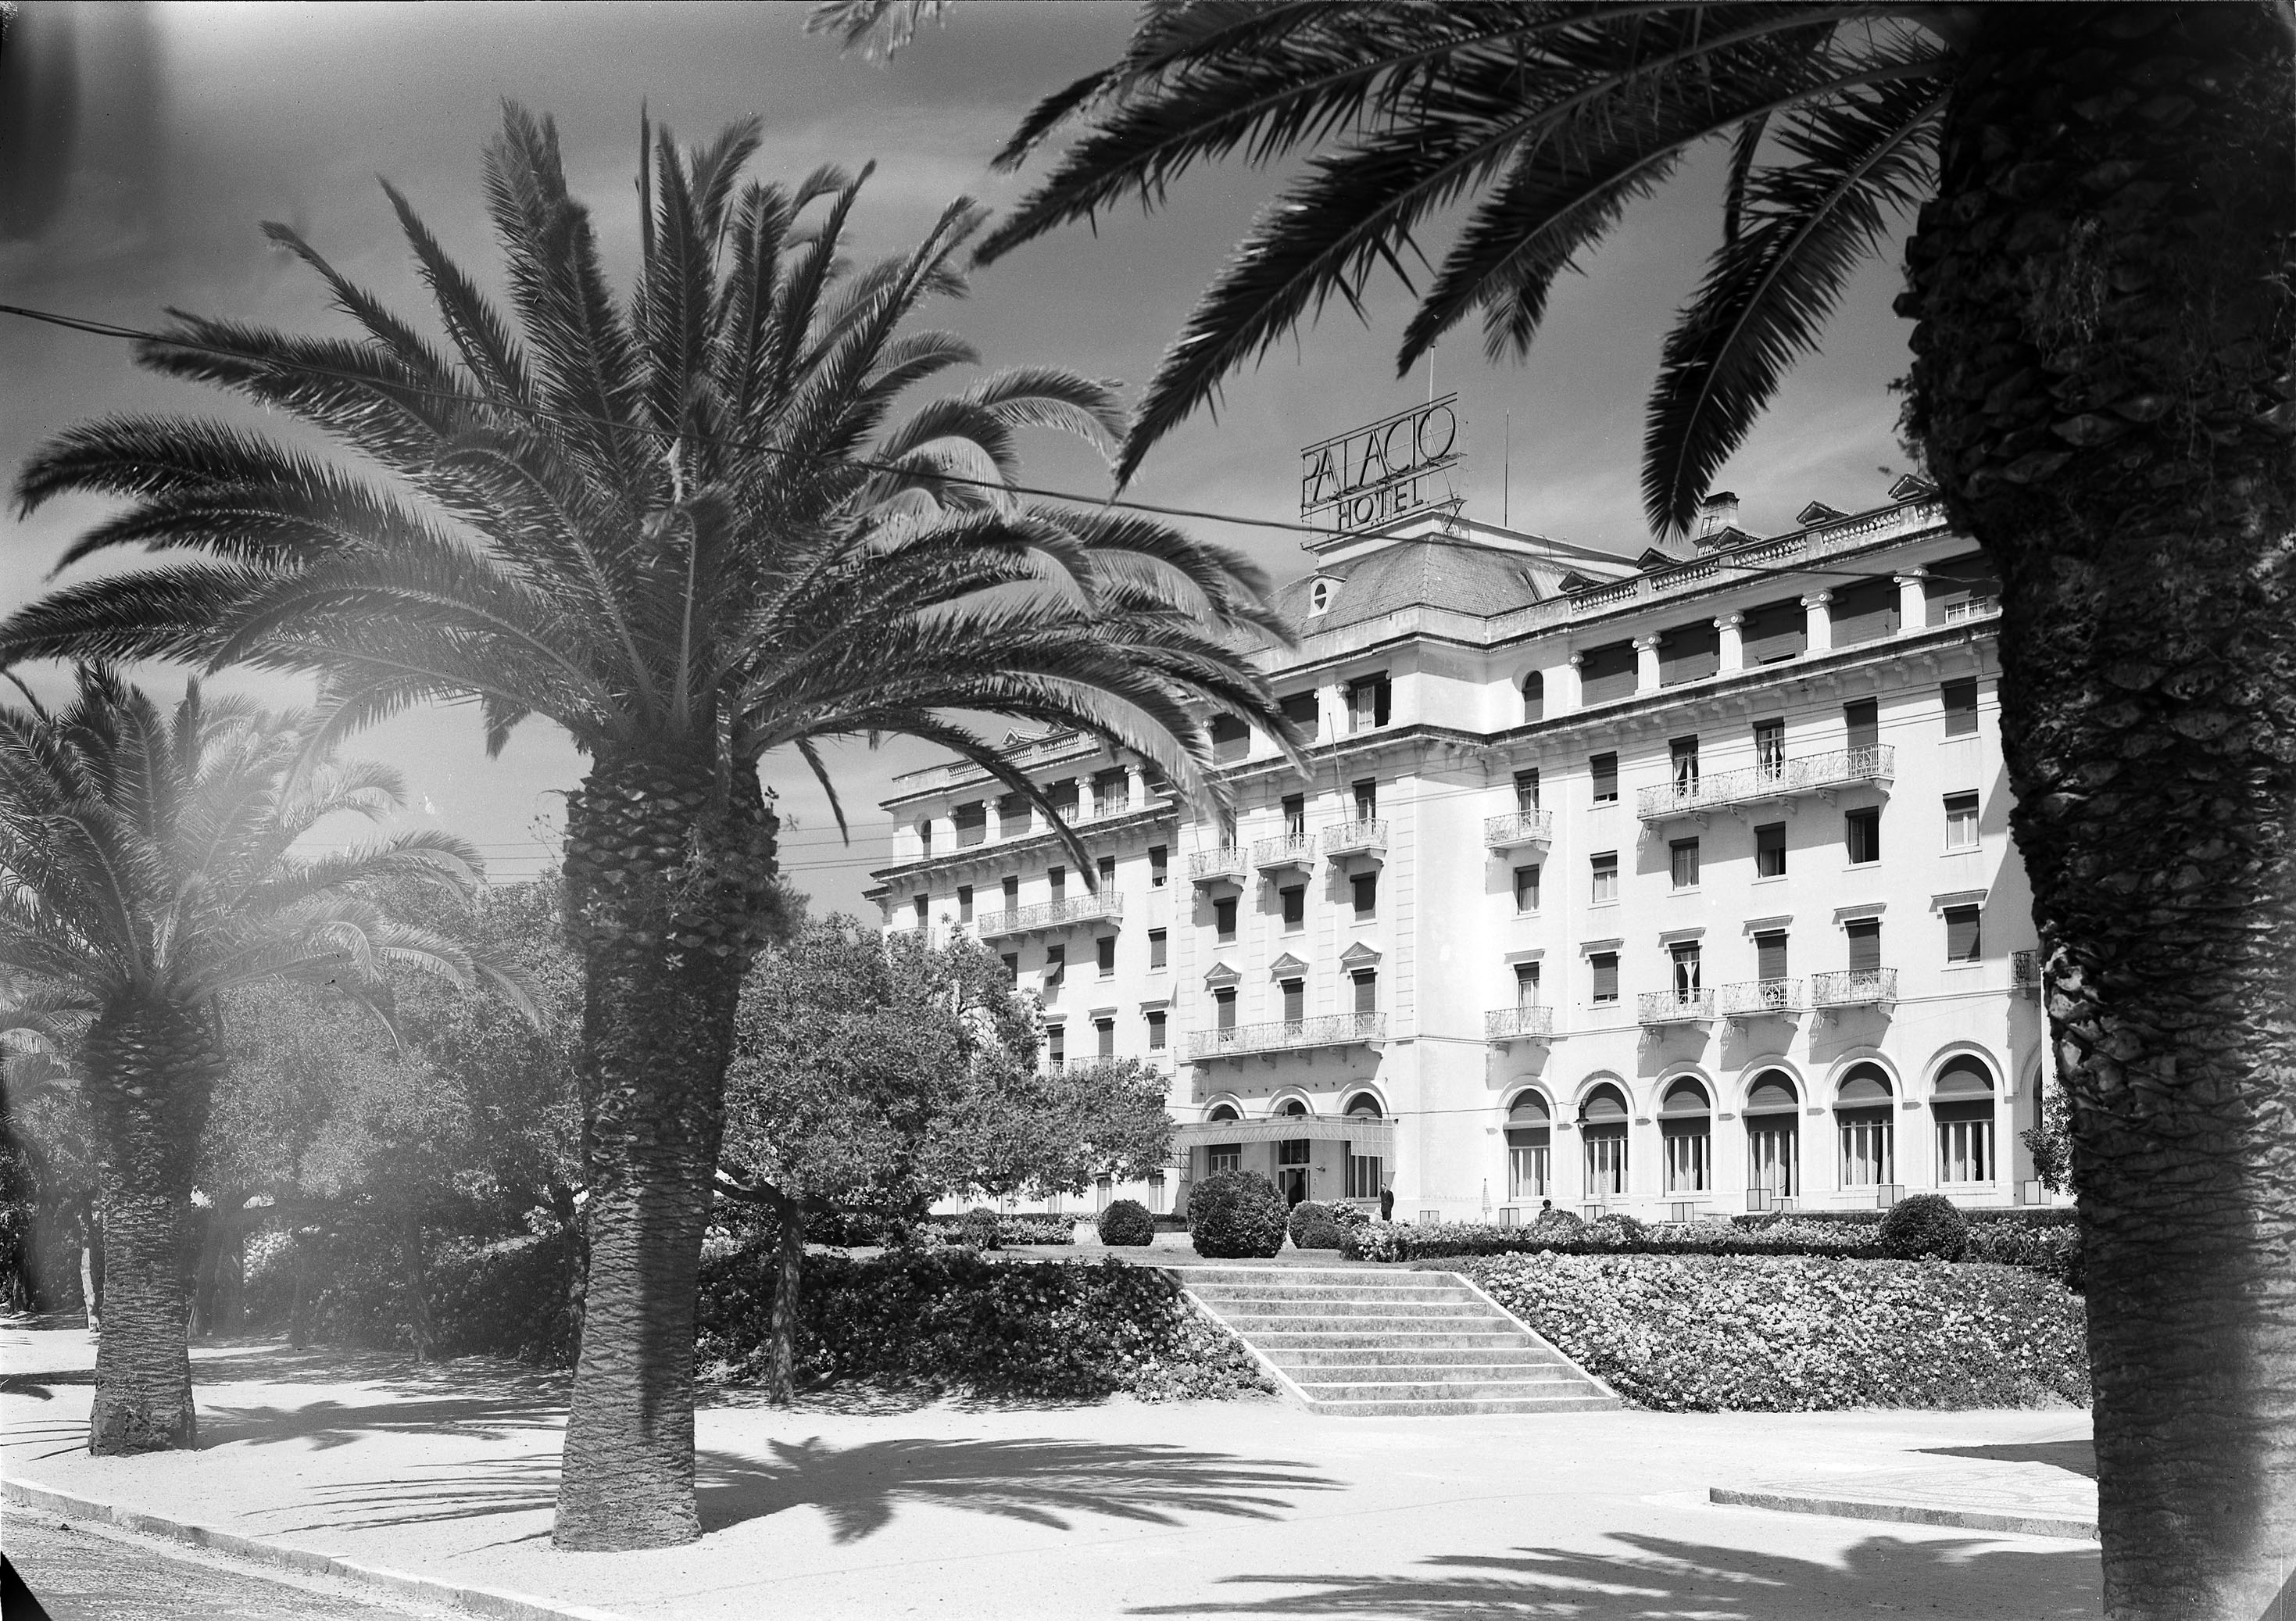 Hotel Palácio no Estoril